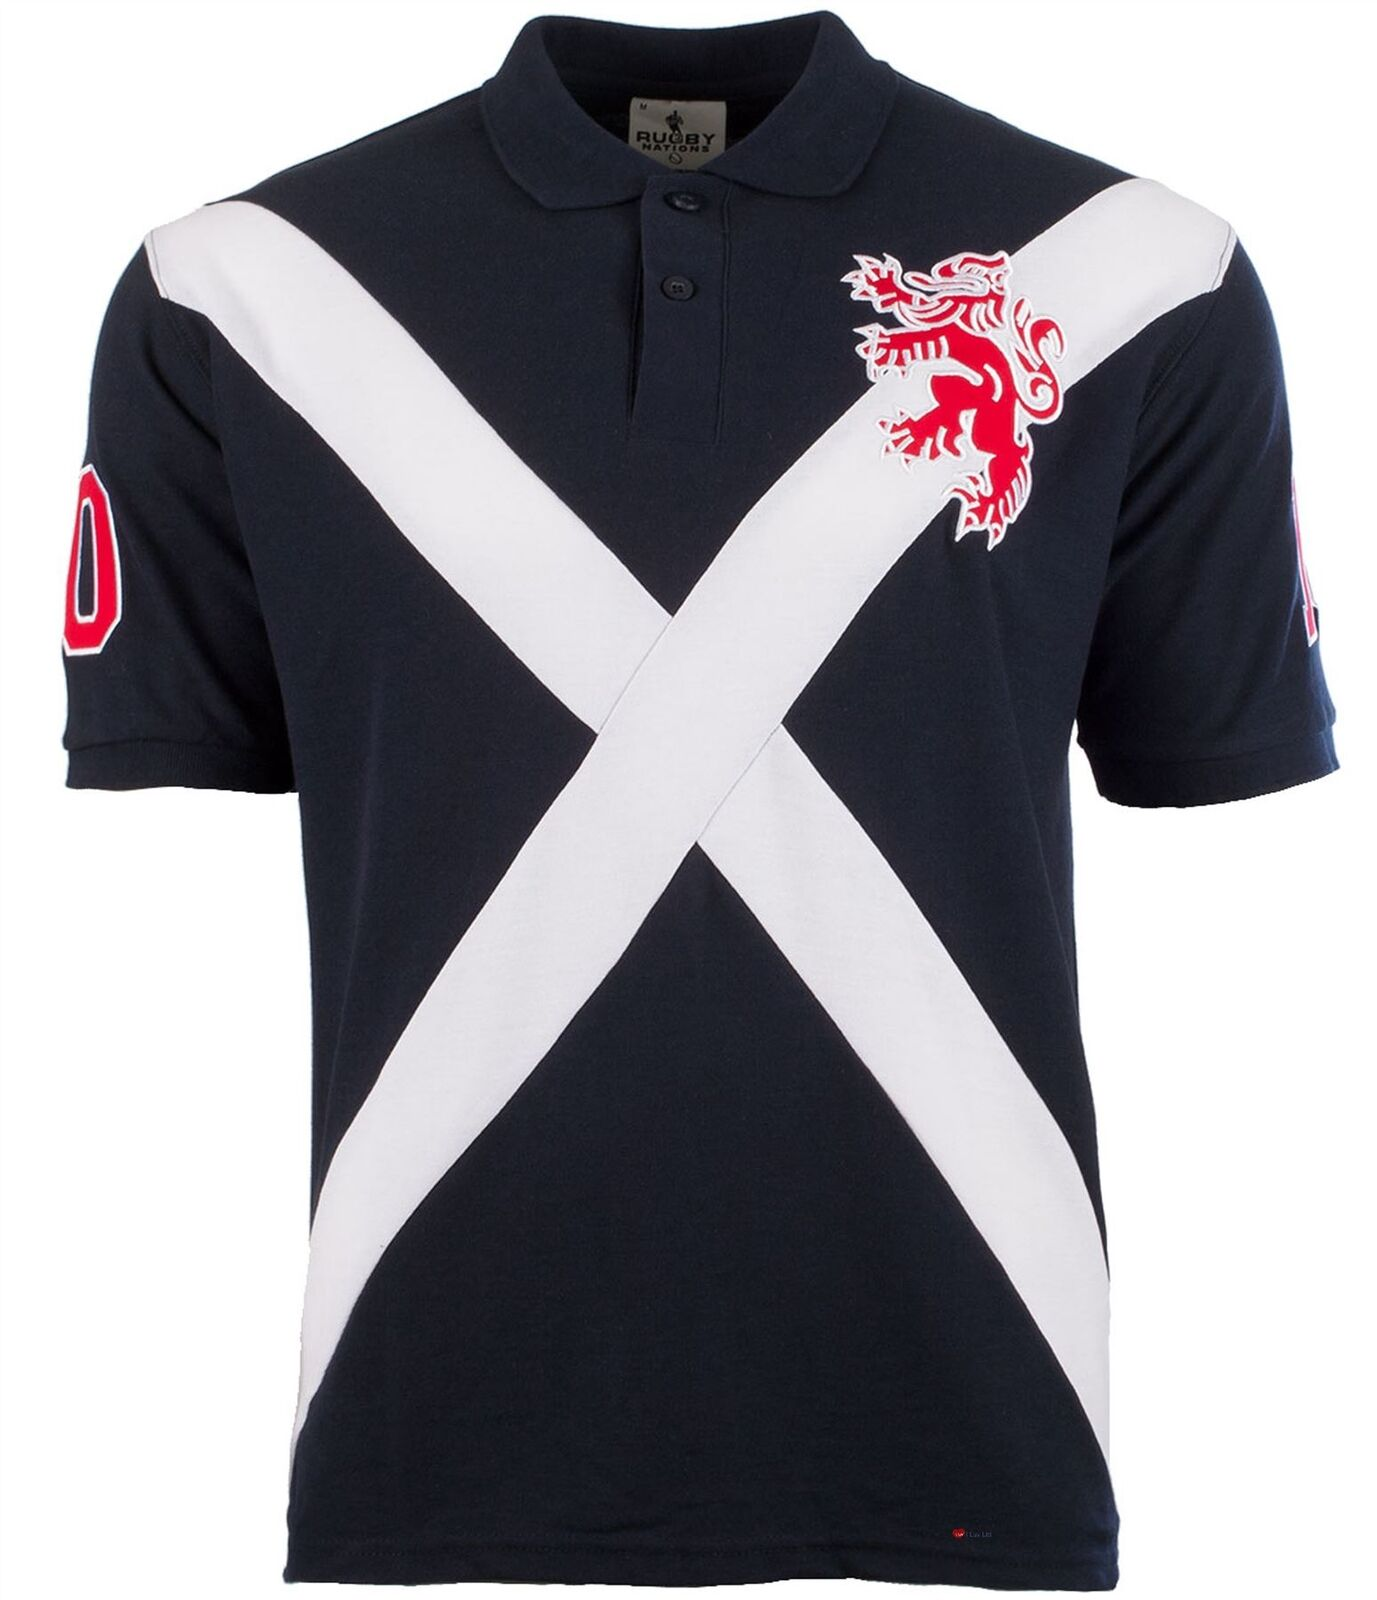 Gents Polo Shirt In Saltire With Small Rampant Lion Design In Navy Größe Large